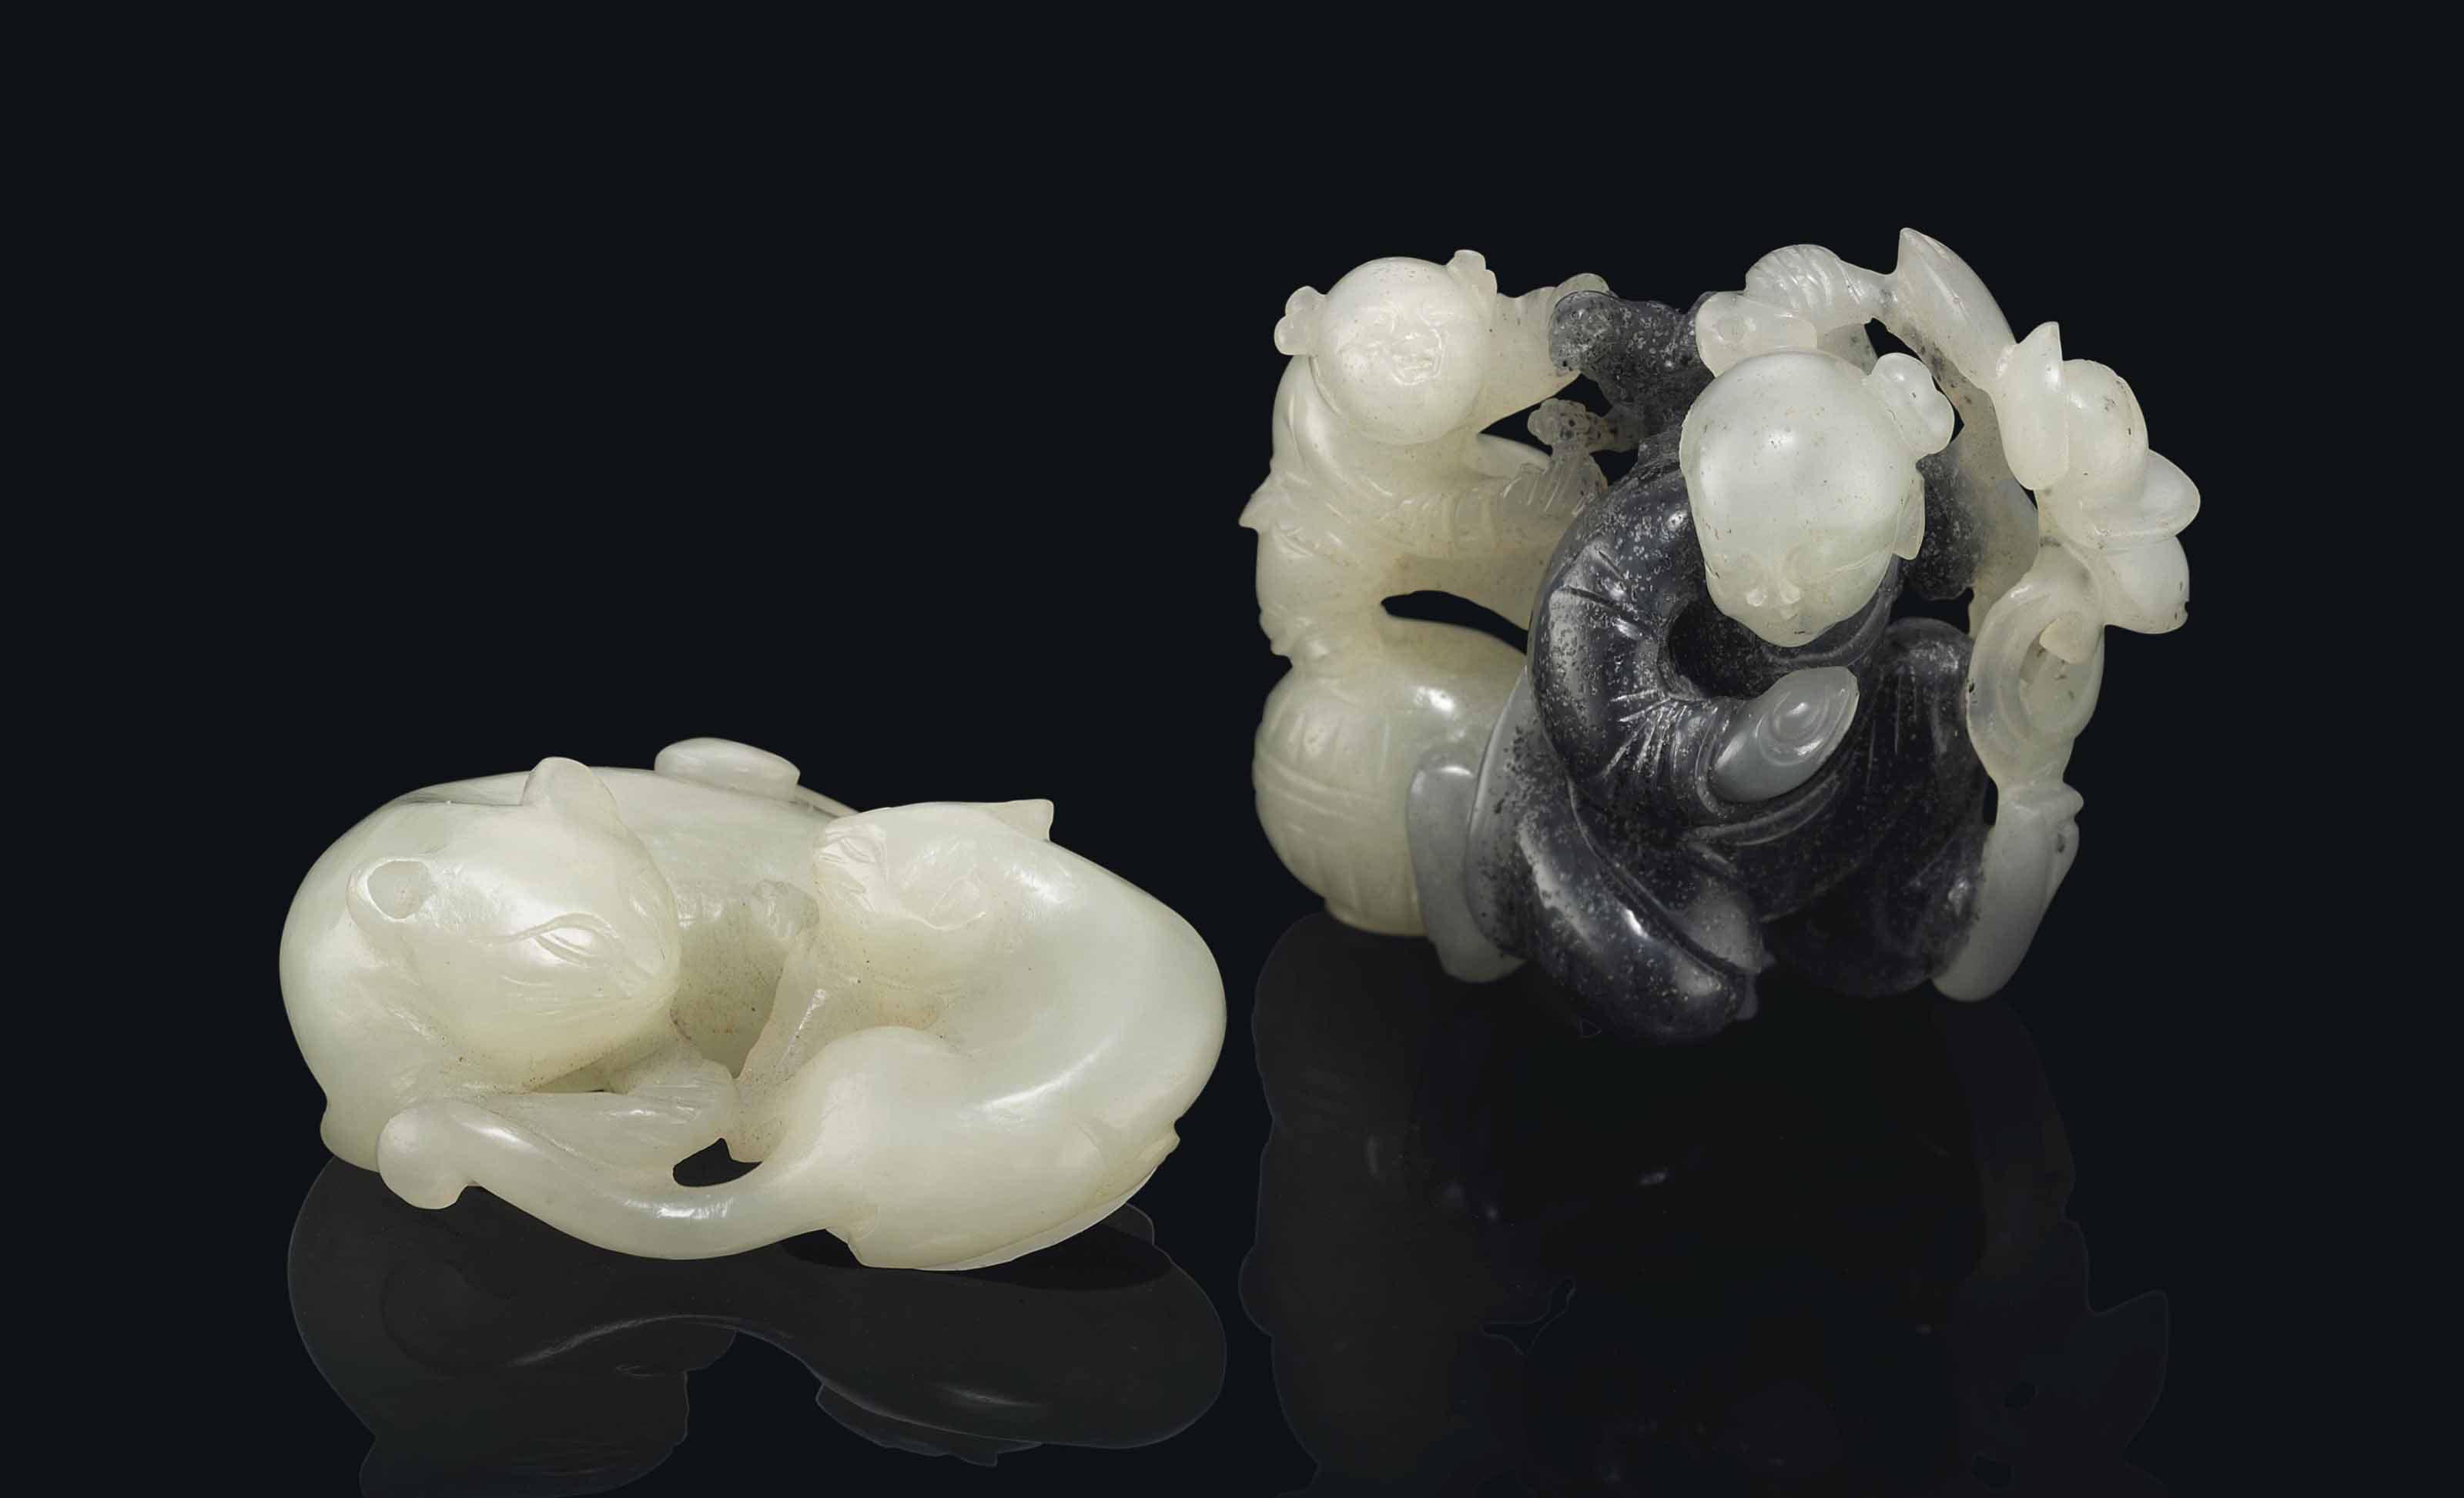 TWO SMALL CHINESE JADE CARVINGS